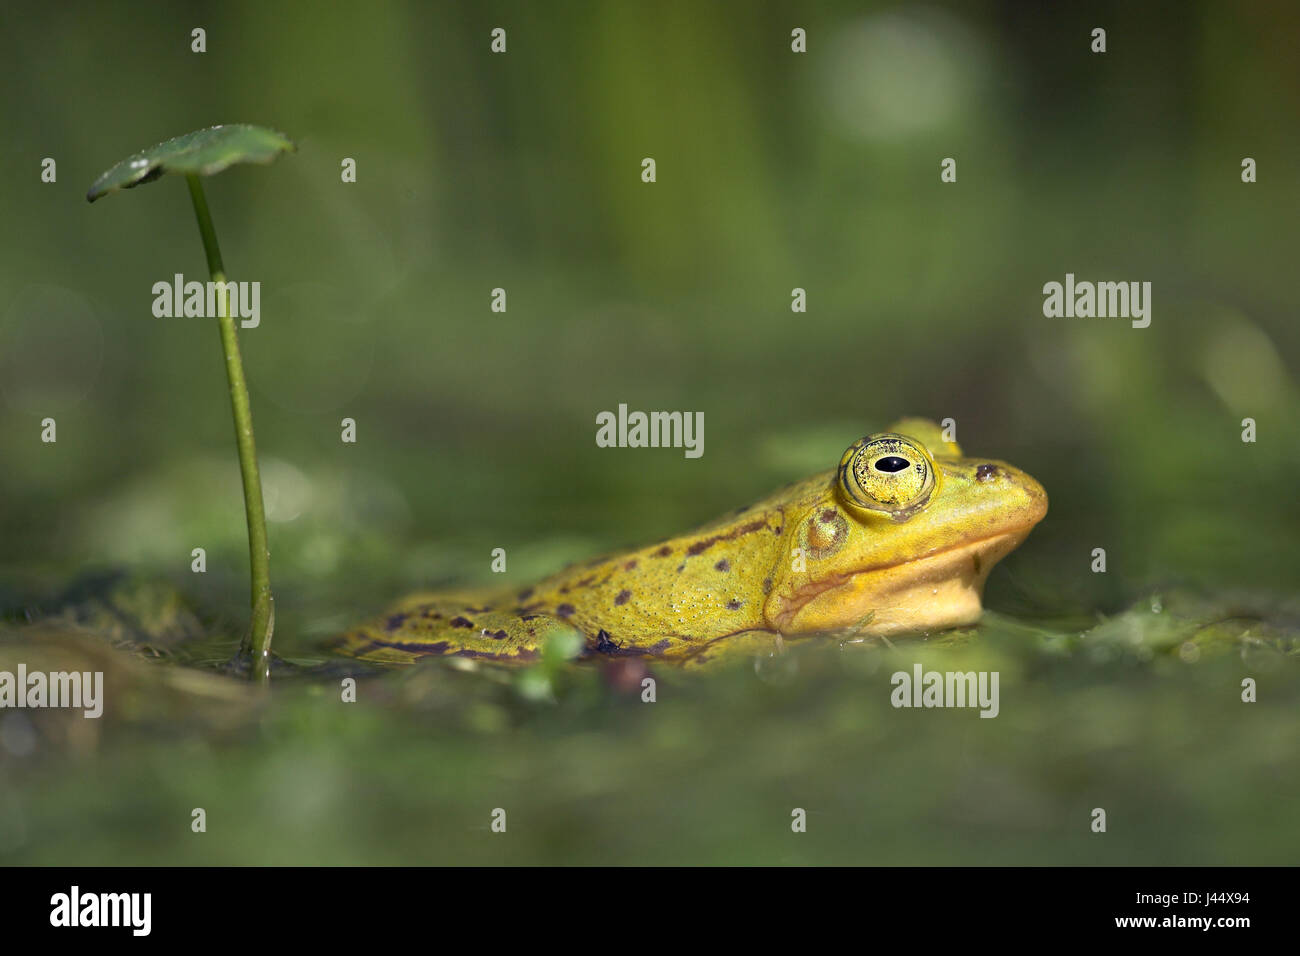 a male pool frog (yellow) rests under an umbrella like leaf - Stock Image